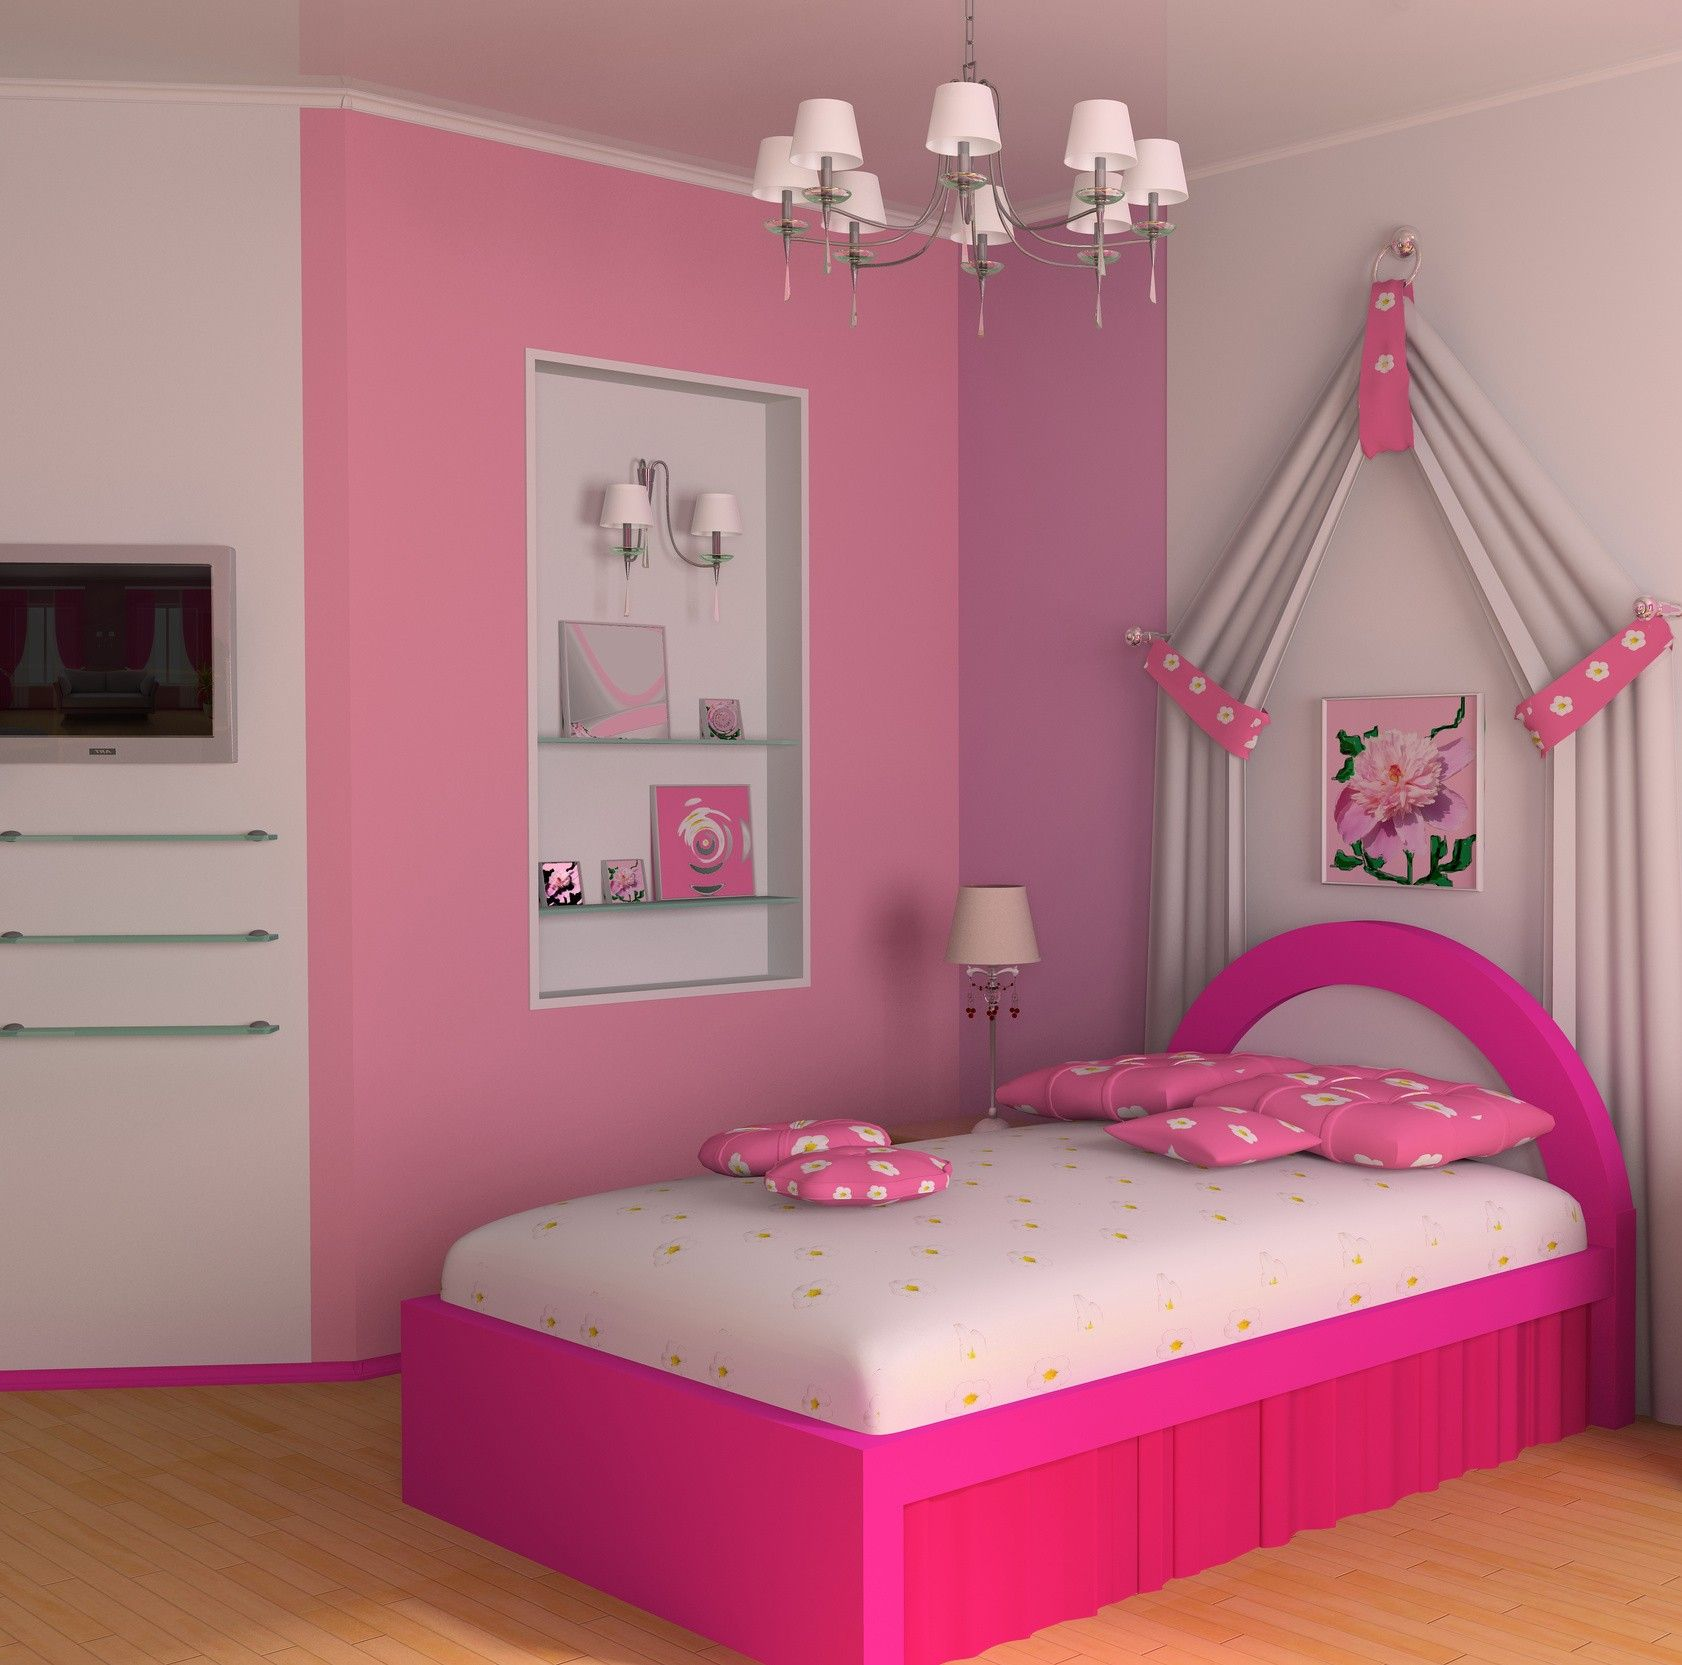 pretty small bedroom idea for teen girls with chic white floral bedding and pink bed frame - Beautiful Bedroom Ideas For Small Rooms